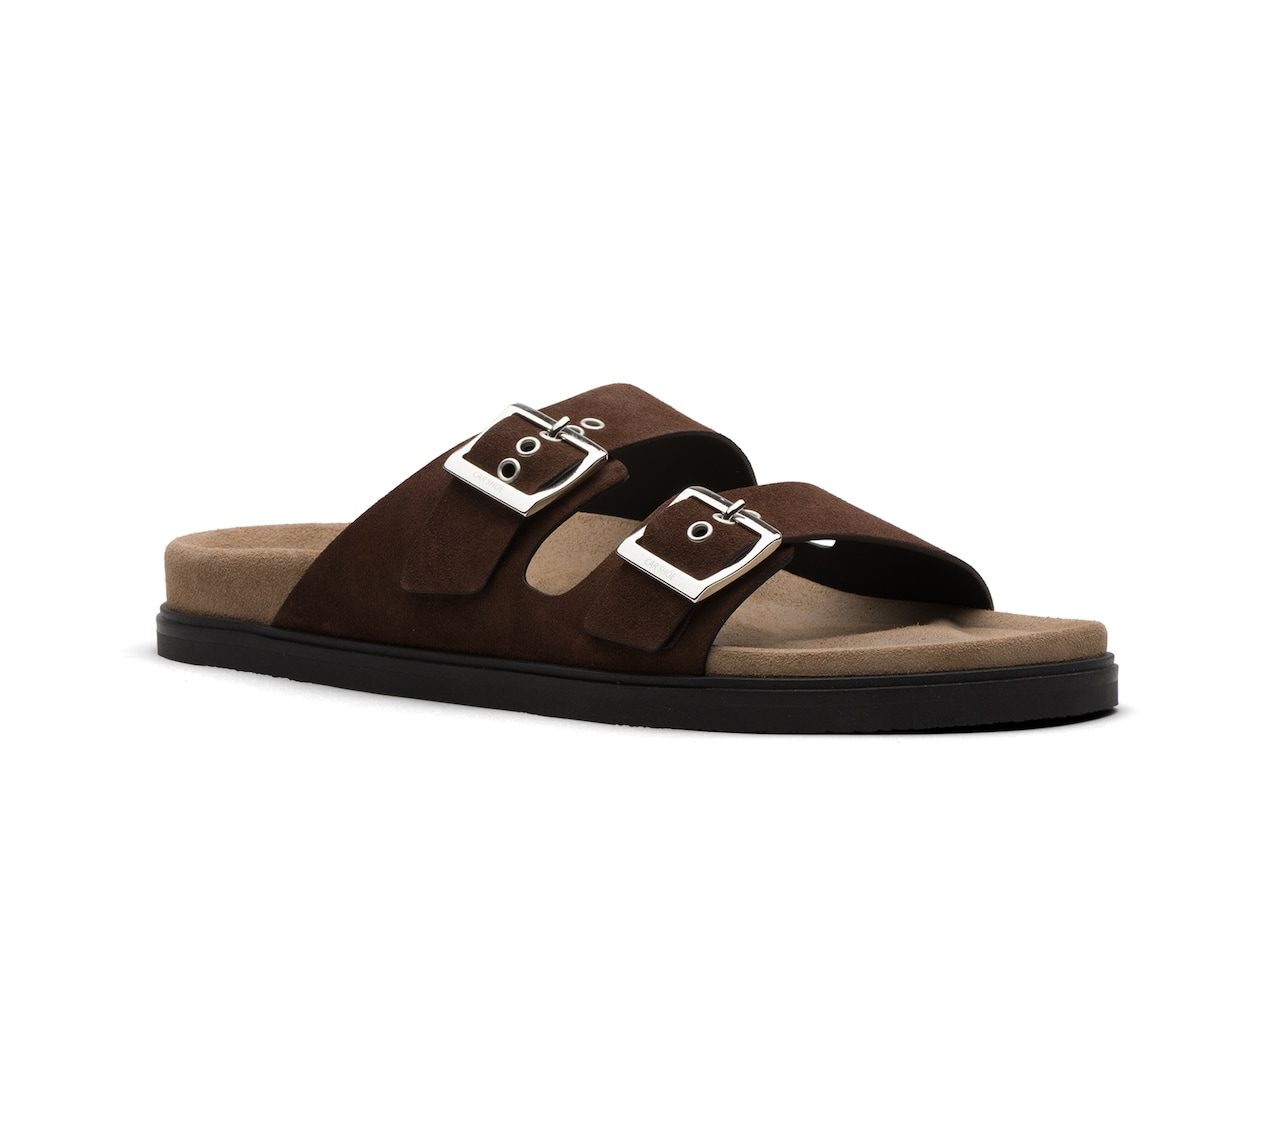 SANDALS IN SUEDE BROWN